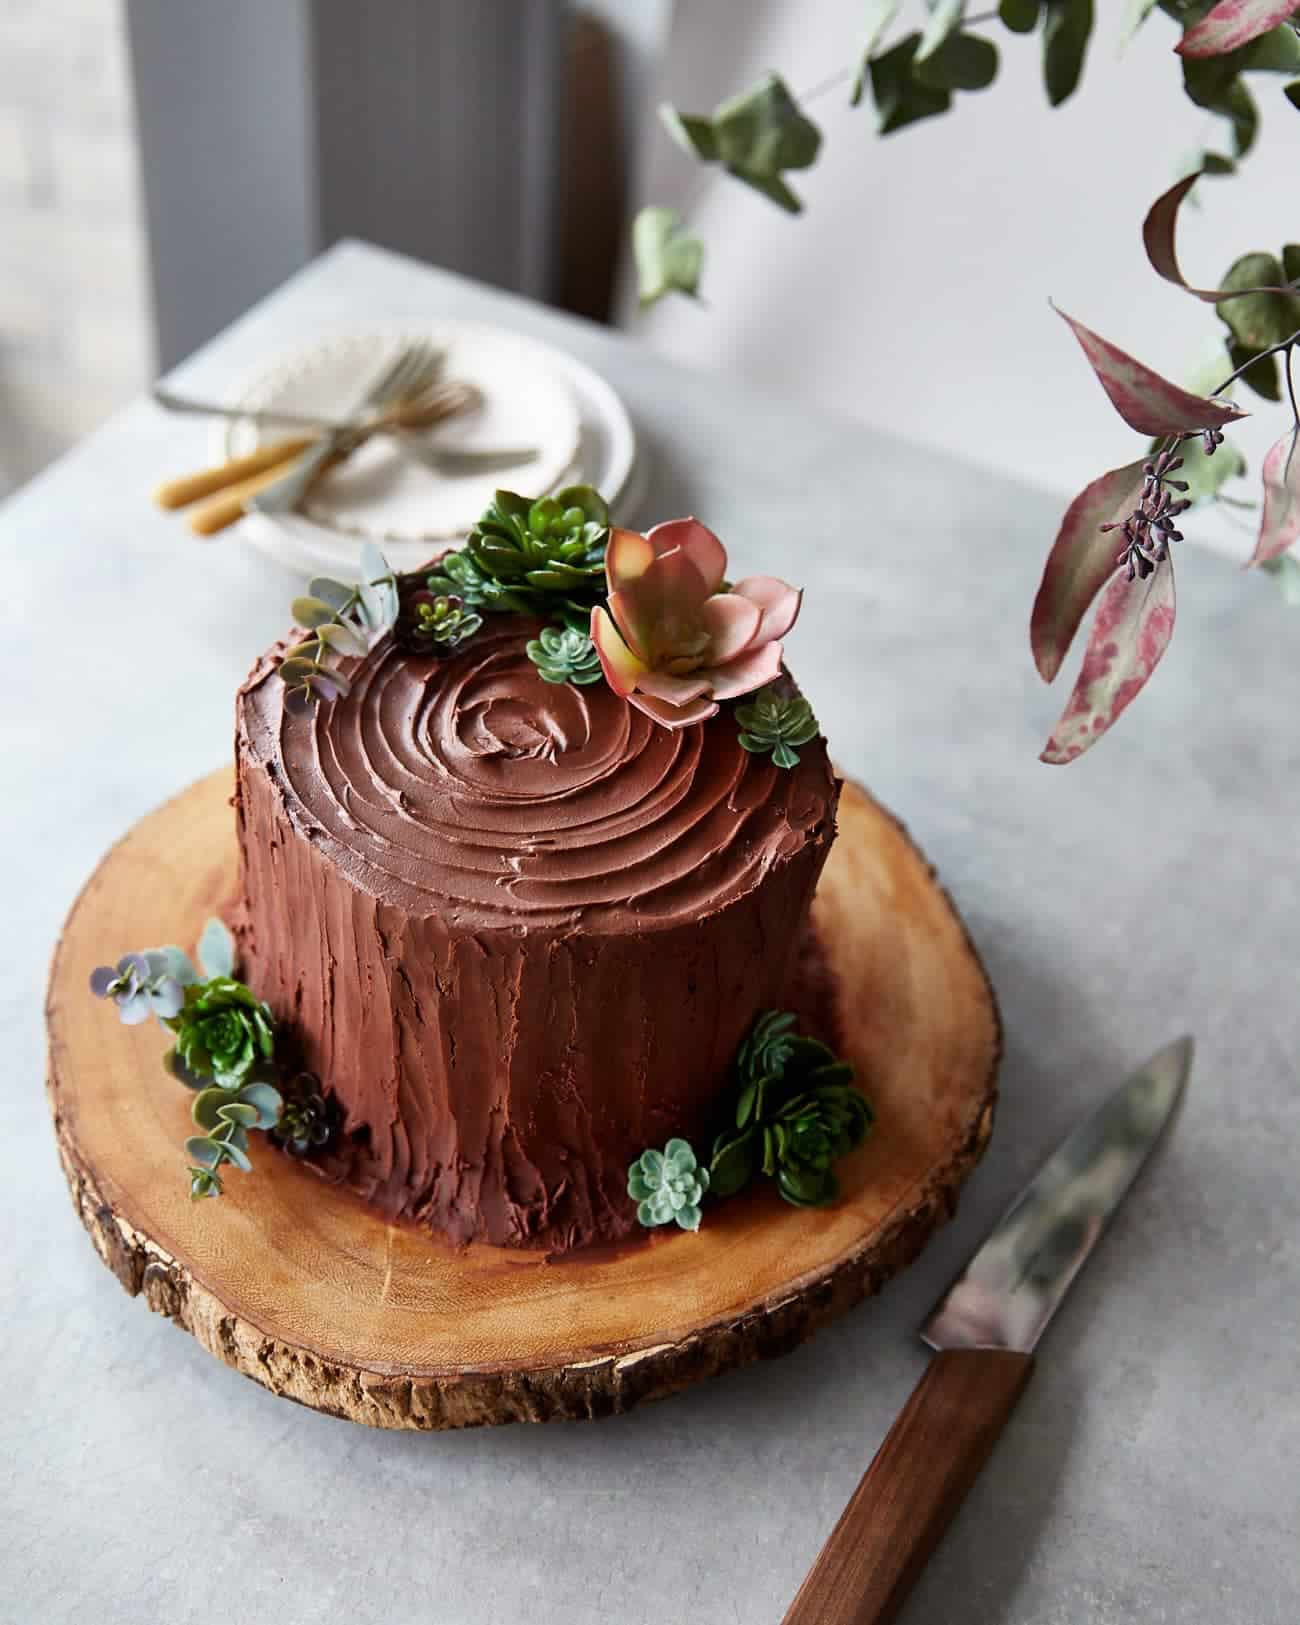 a chocolate tree stump cake on a wooden cake stand